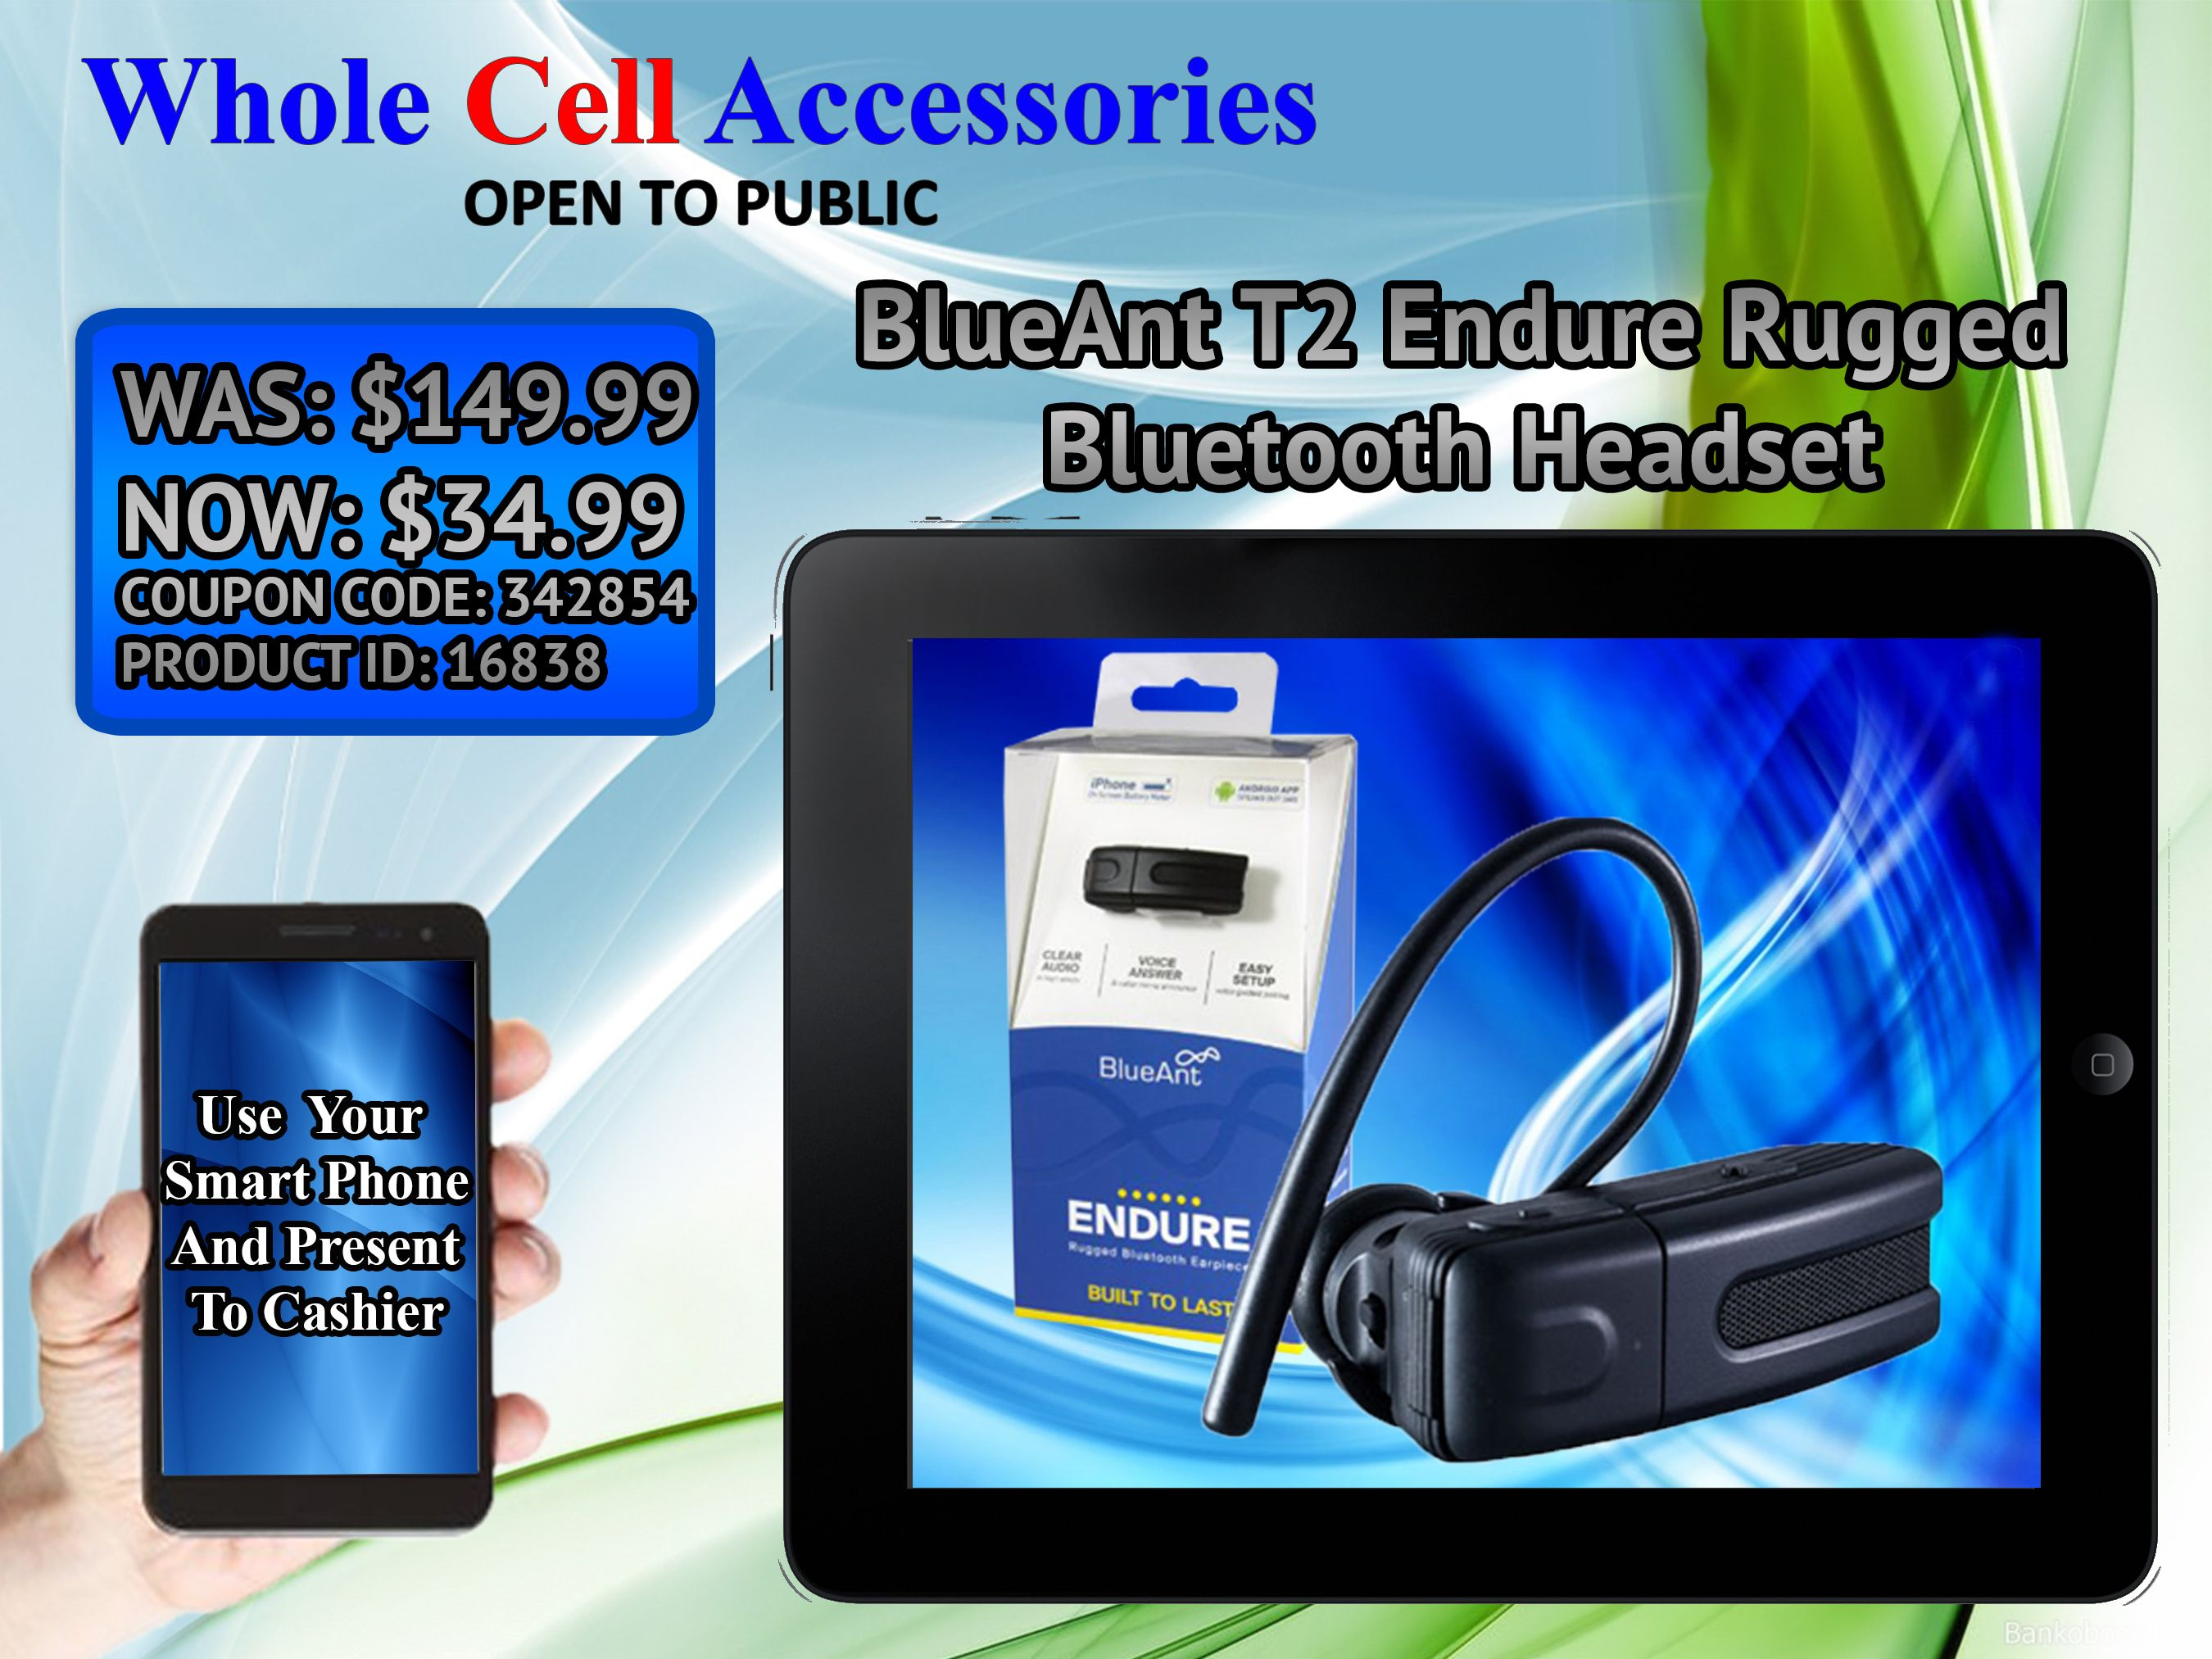 The Blueant T2 Endure Rugged Bluetooth Headset Is Now On At Whole Cell Accessories